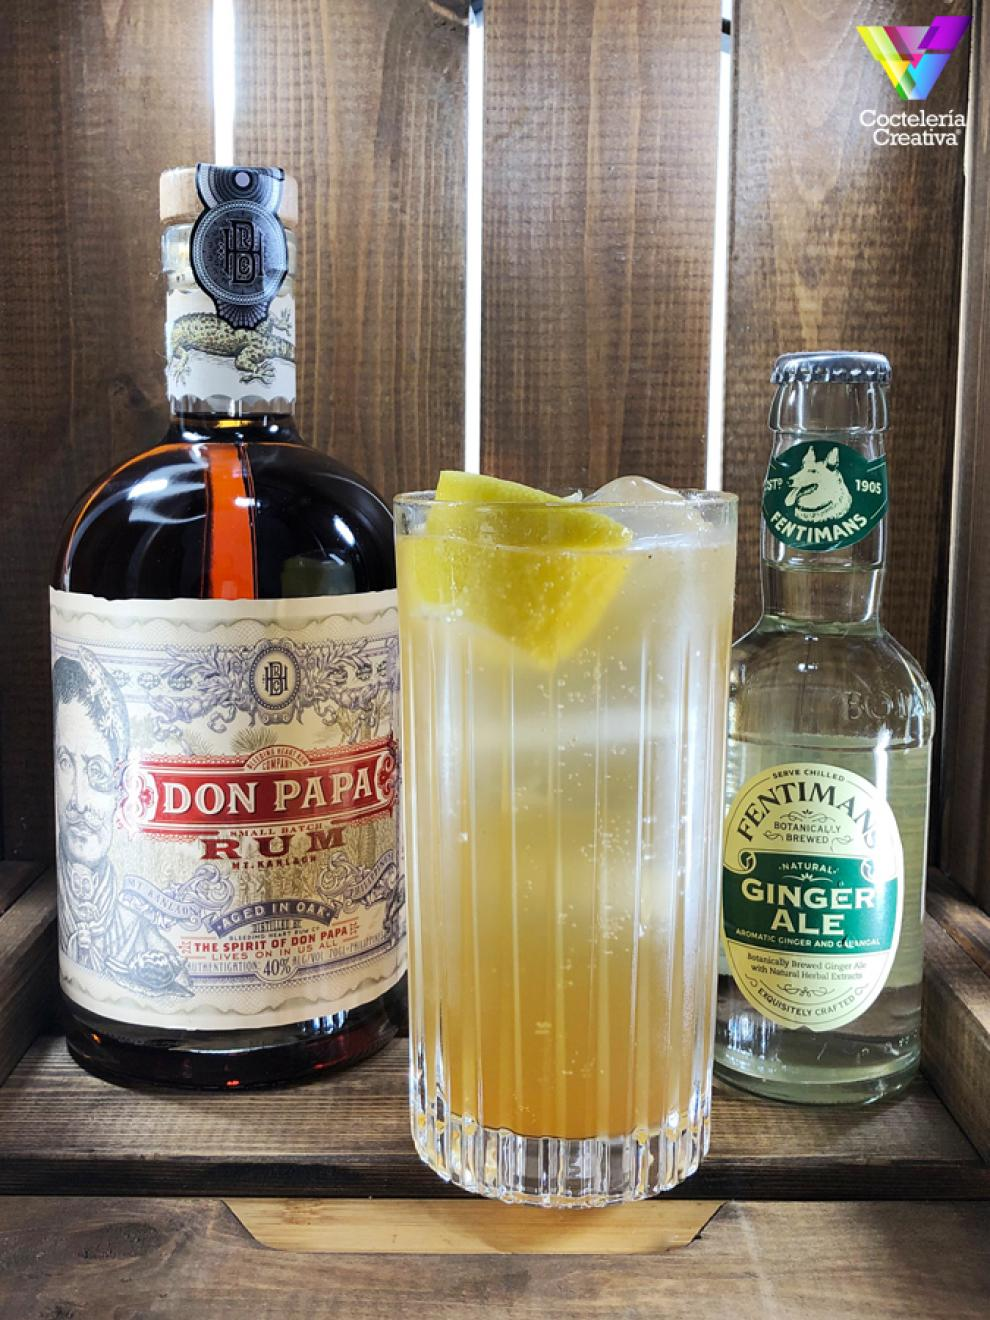 imagen cóctel Don Papa Highball Chai con botella de Don Papa y de Fentimans